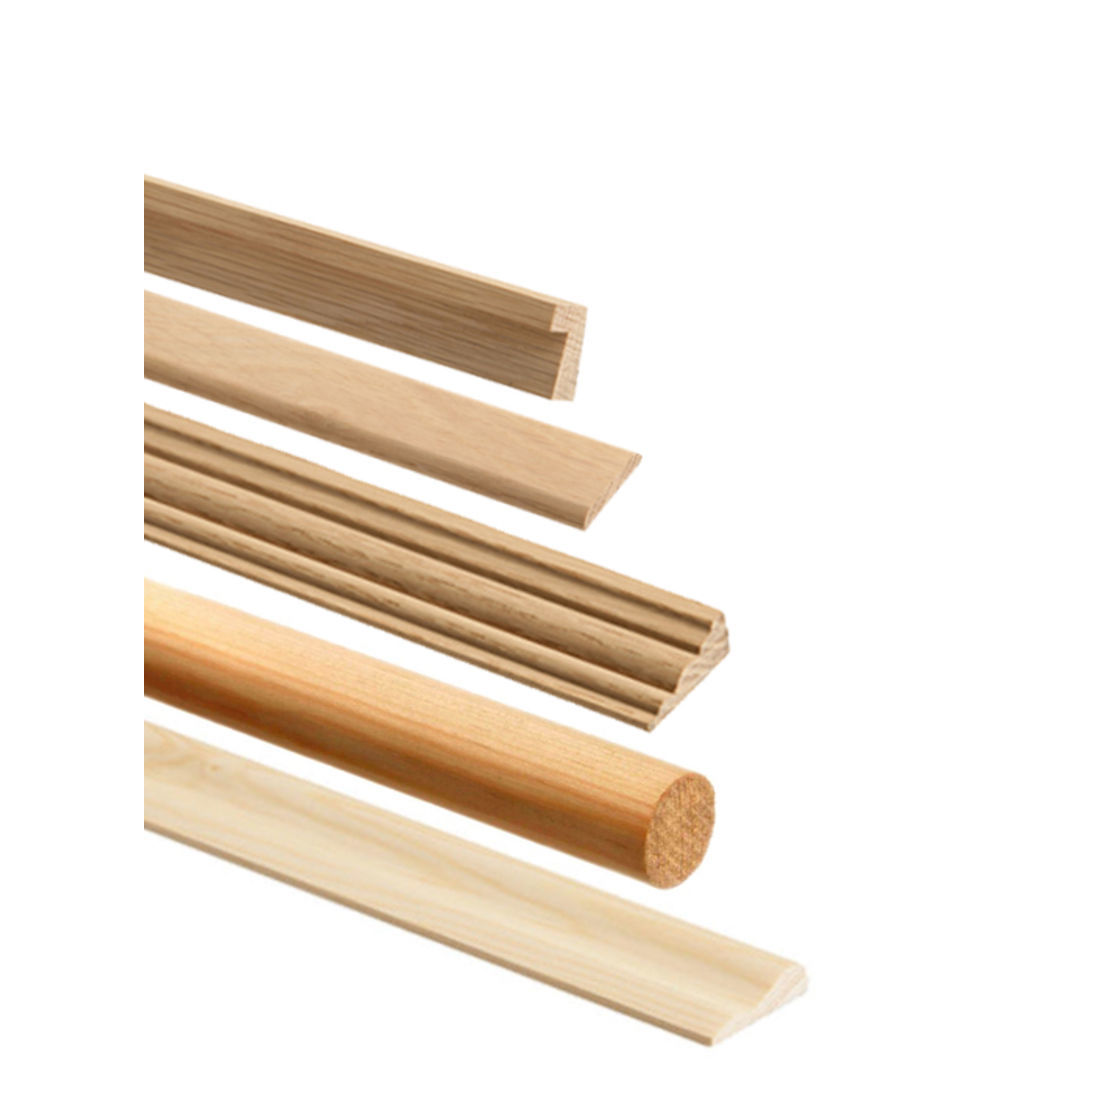 Save 20% on Timber Mouldings!